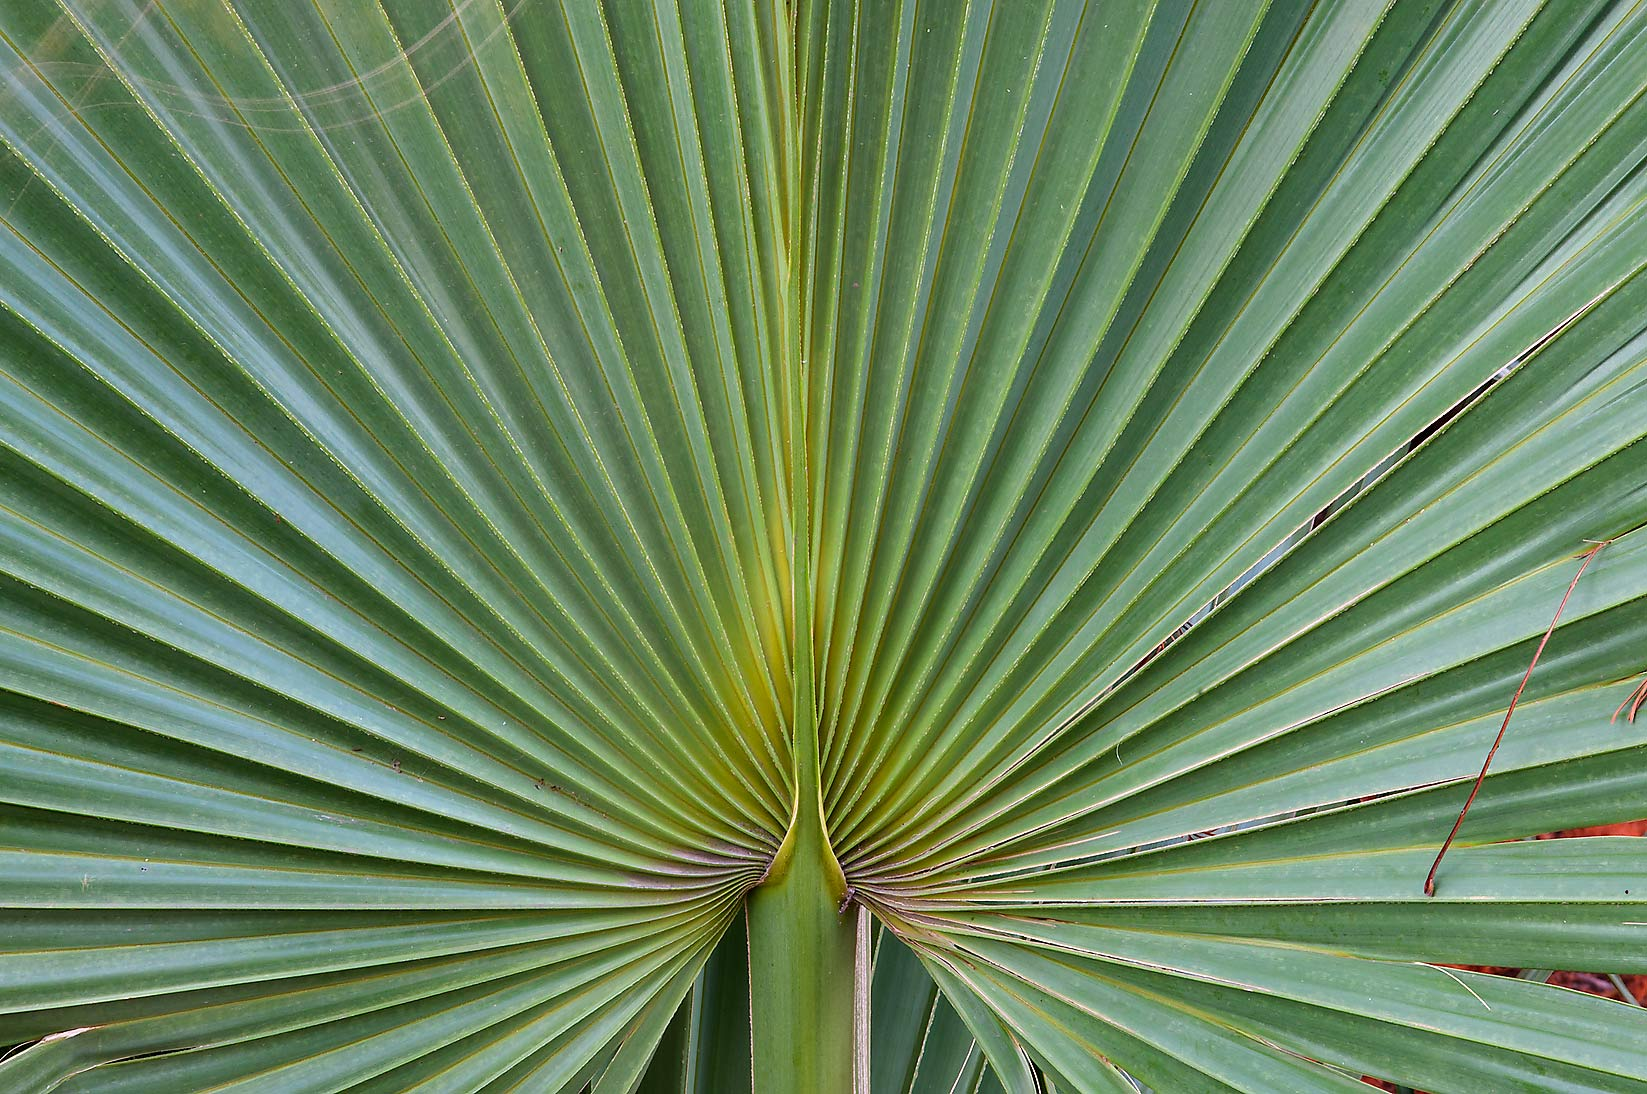 Palm leaf in TAMU Horticultural Gardens in Texas...M University. College Station, Texas